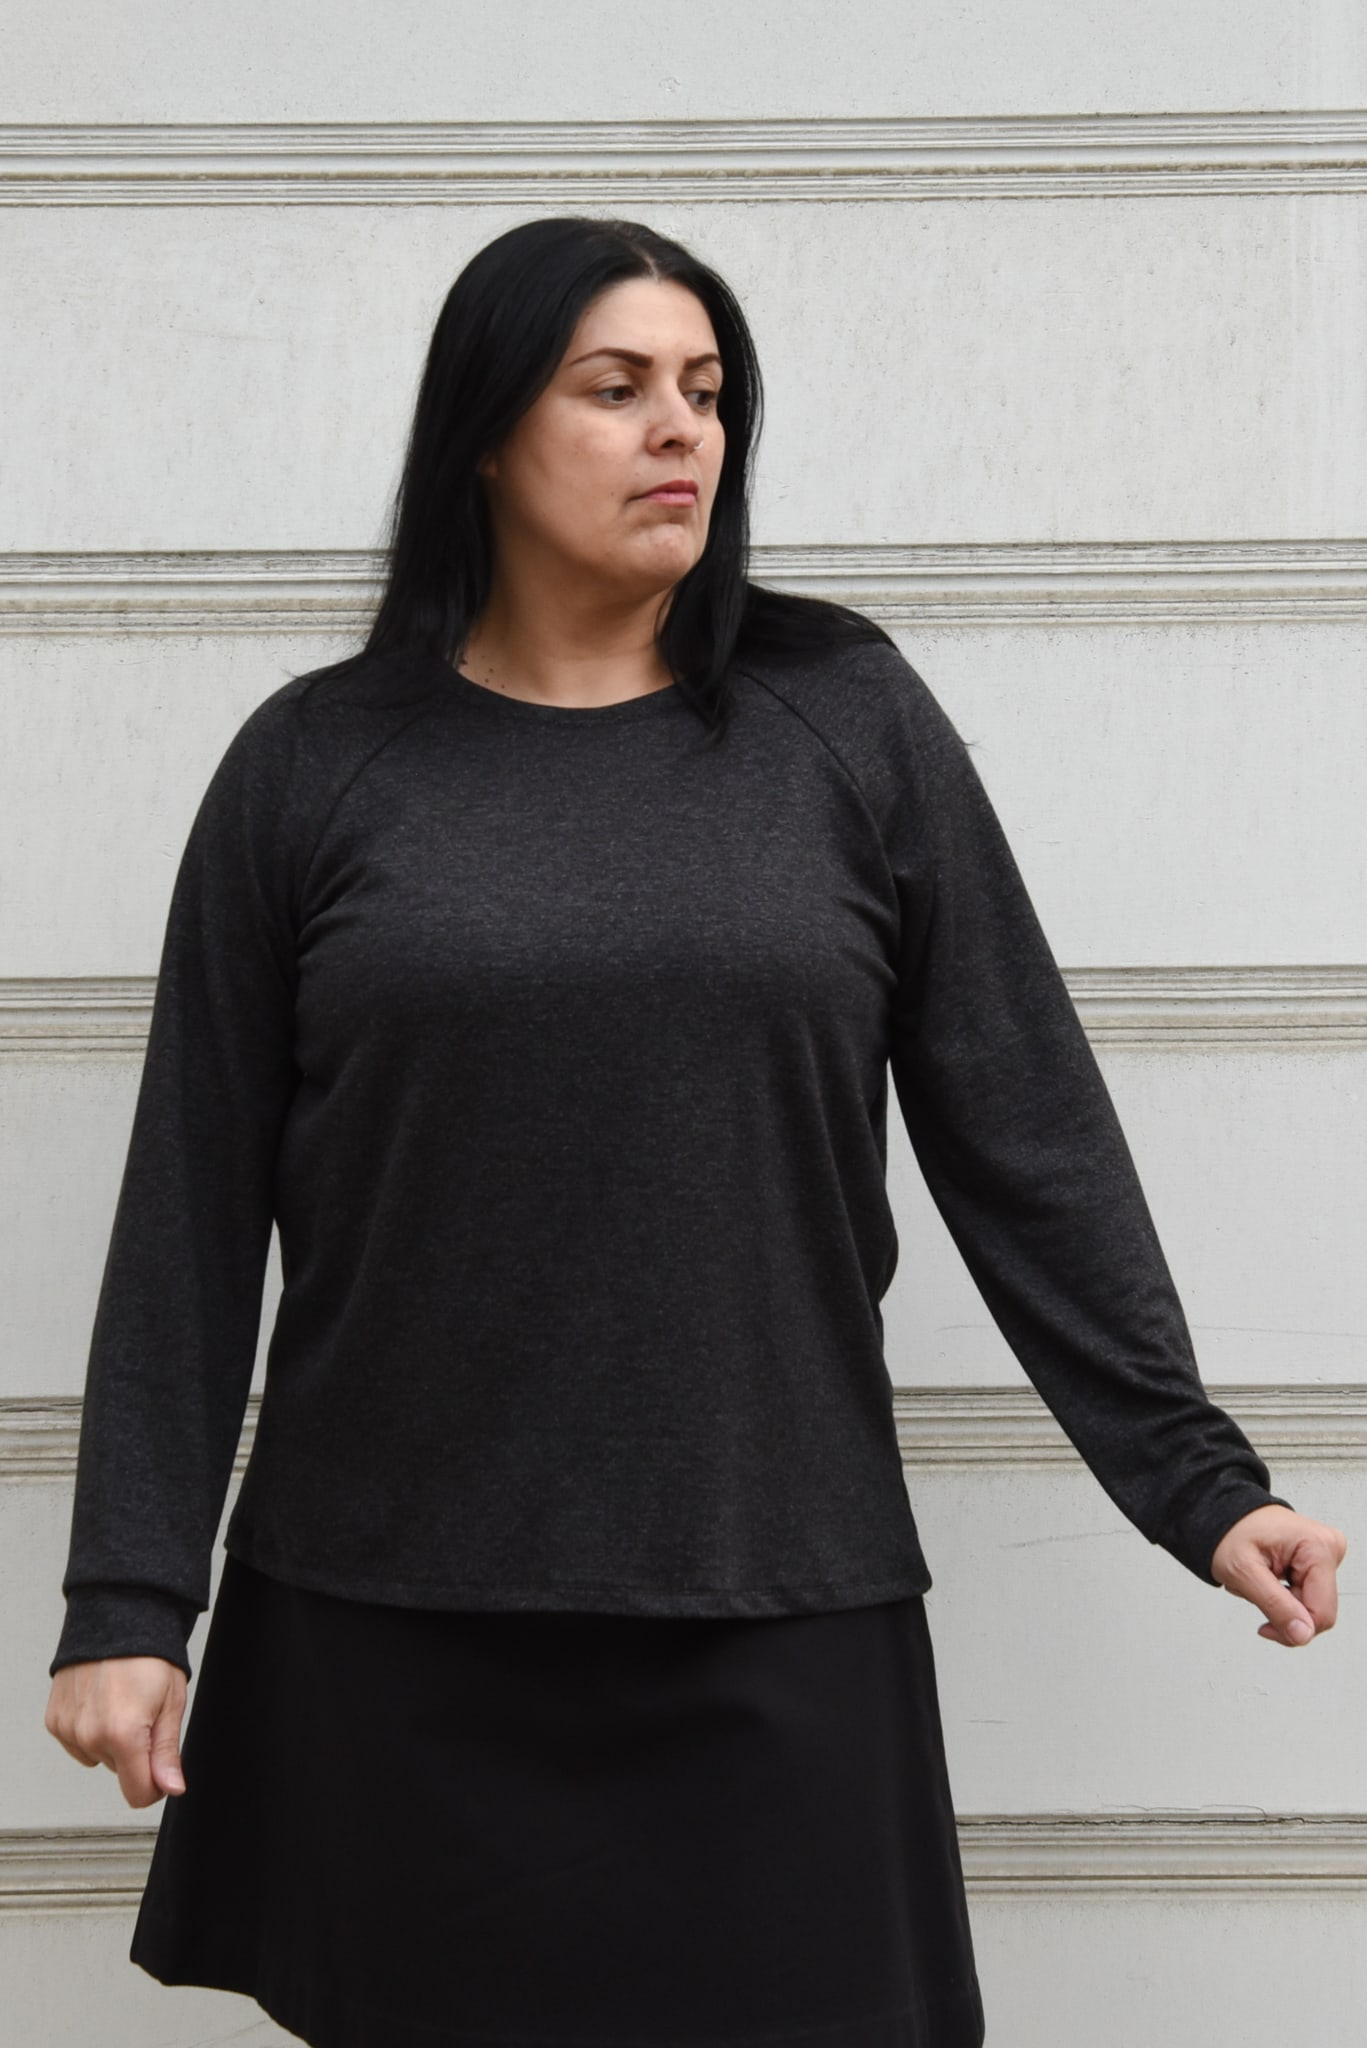 Image of a woman wearing a dark gray Grainline Linden sweatshirt and a black skirt standing in front of a white background